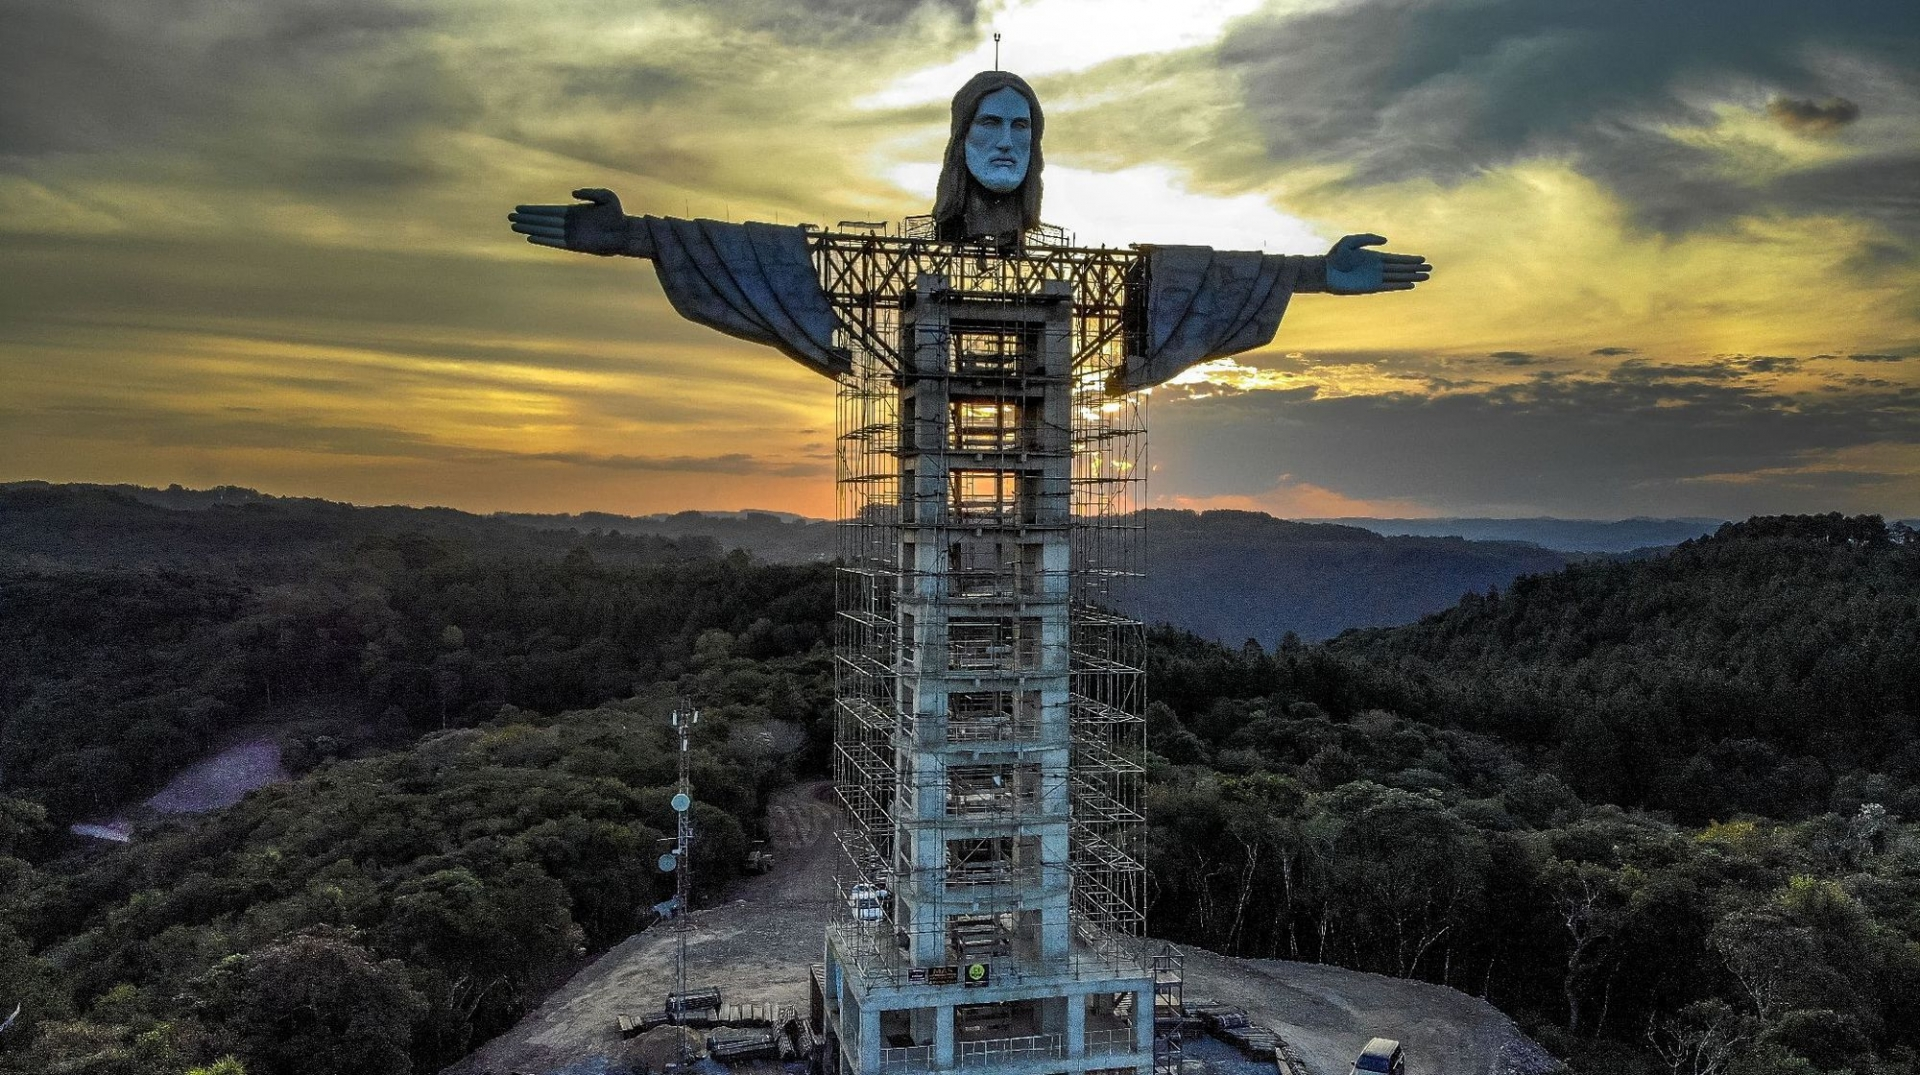 World breaking news today (April 11):  Brazil building new giant Christ statue, taller than Rio's